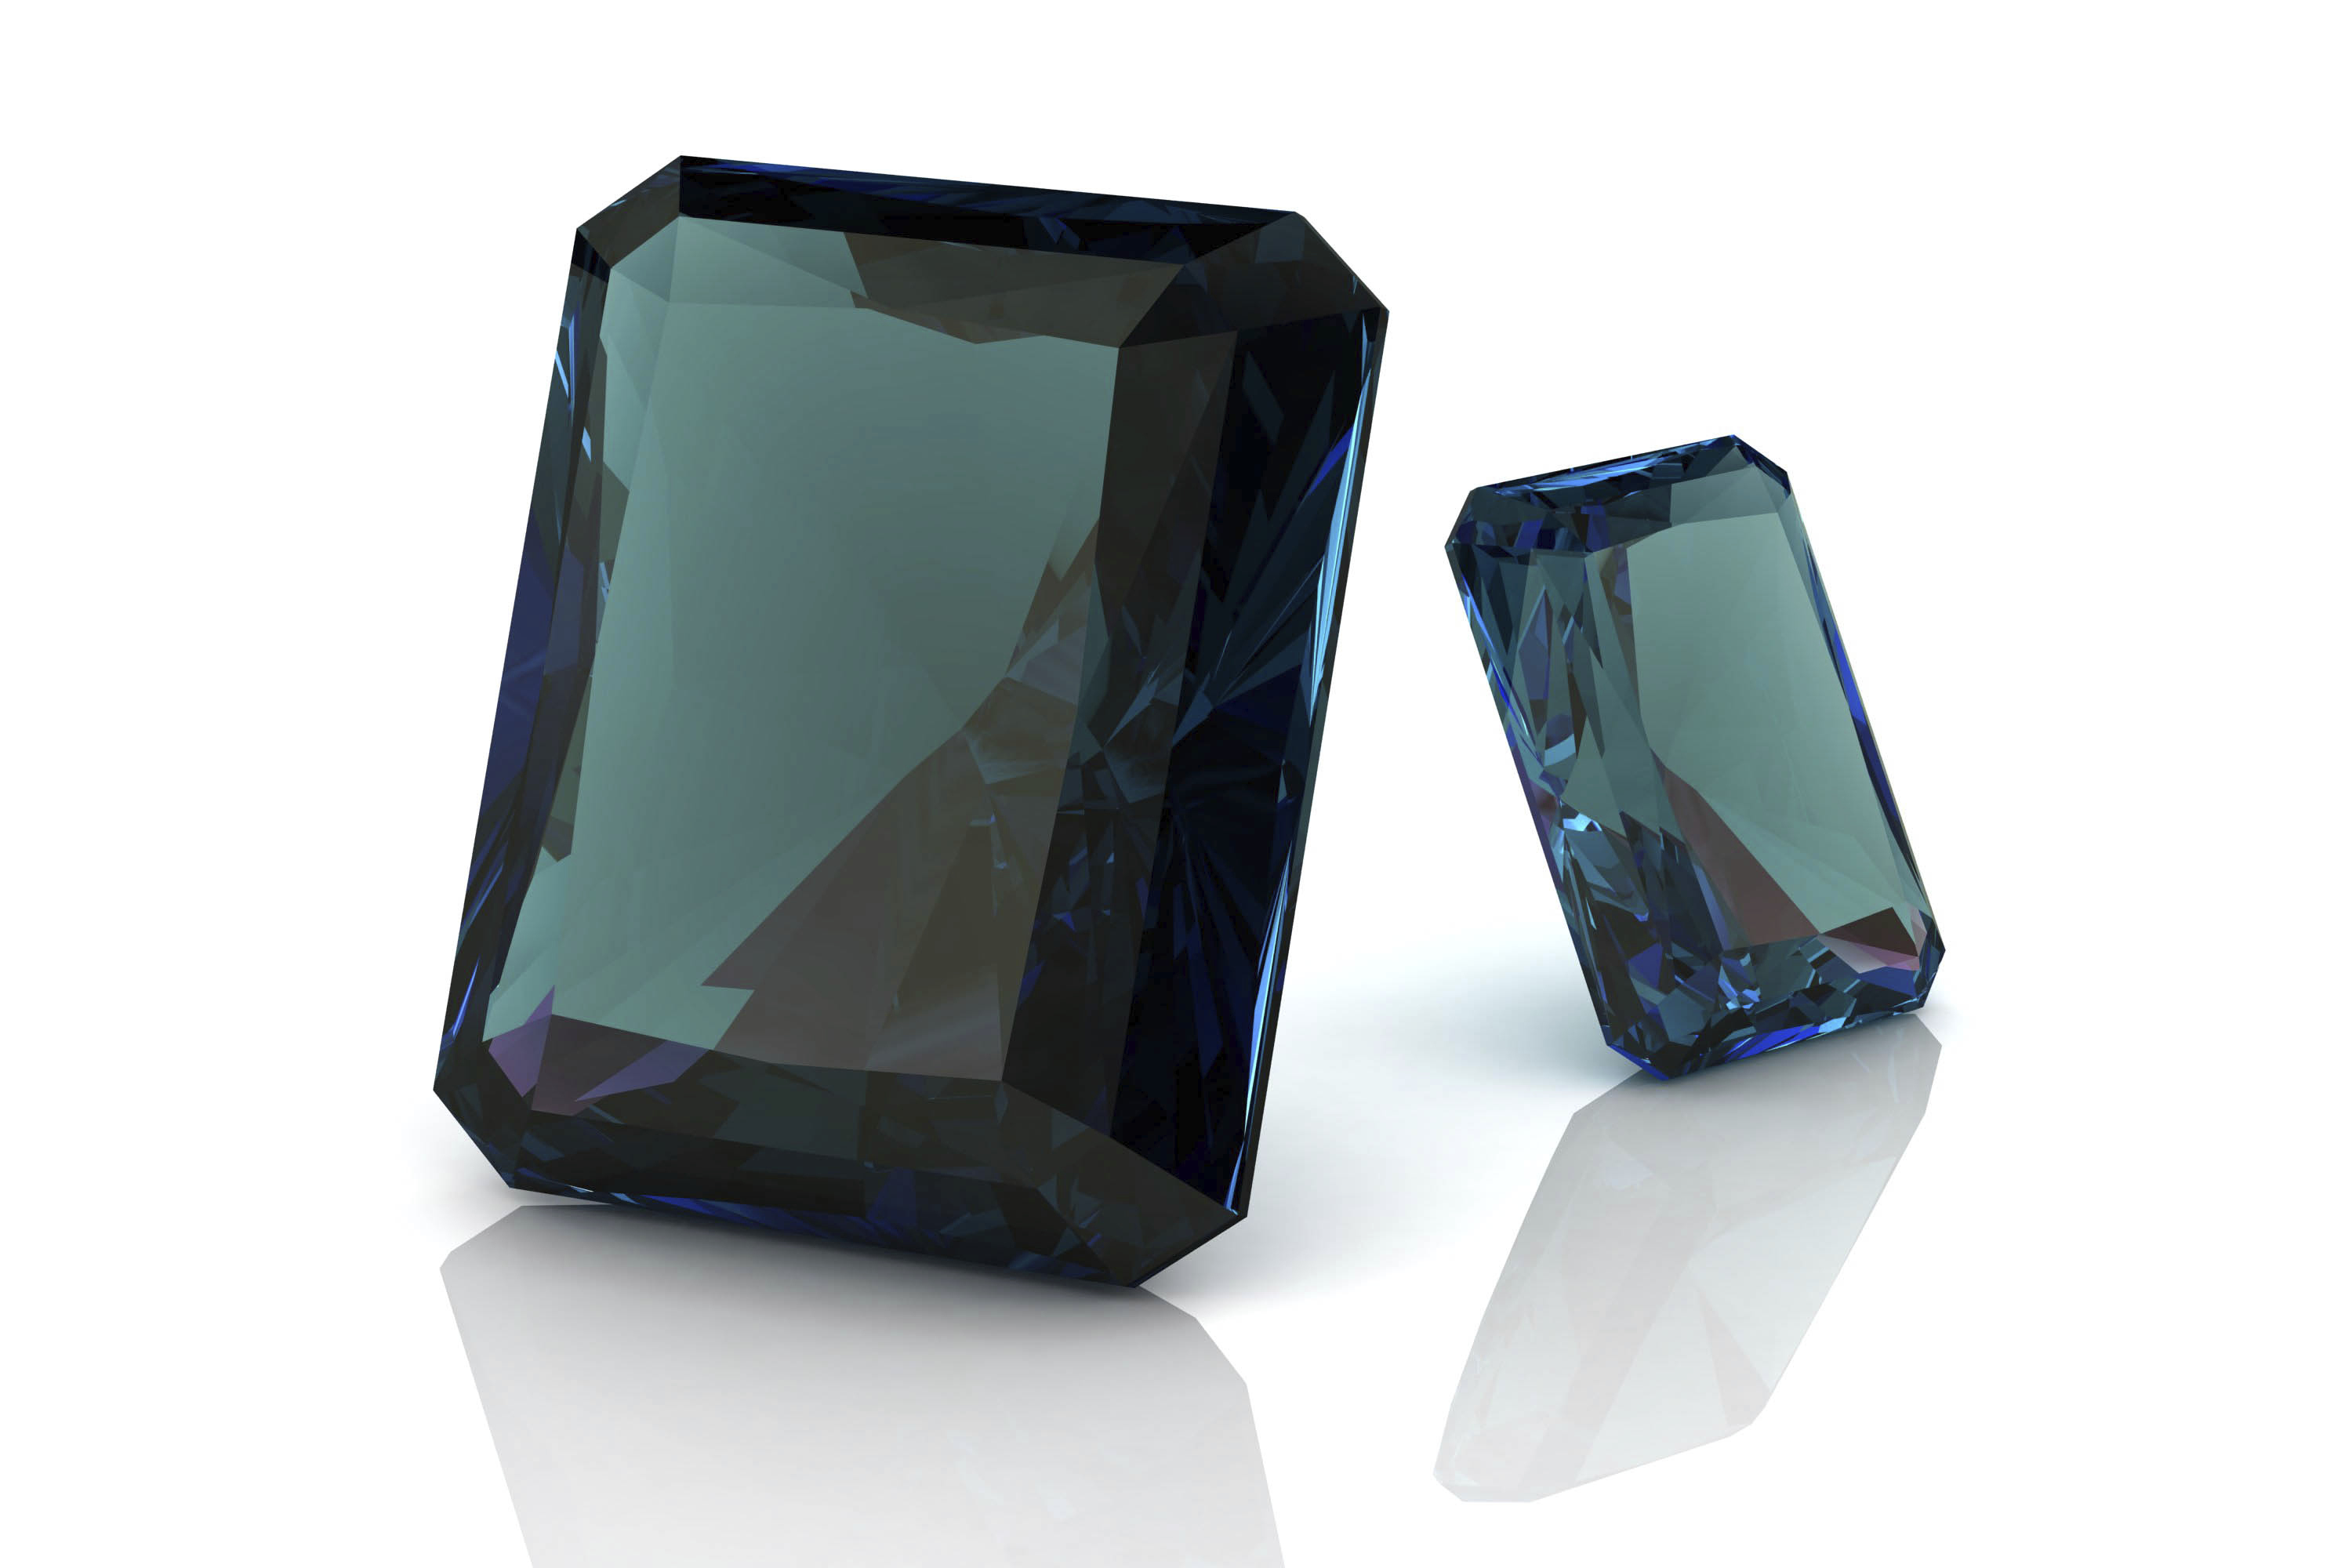 Which Gem Is Highest in Terms of Value: Diamond, Emerald or